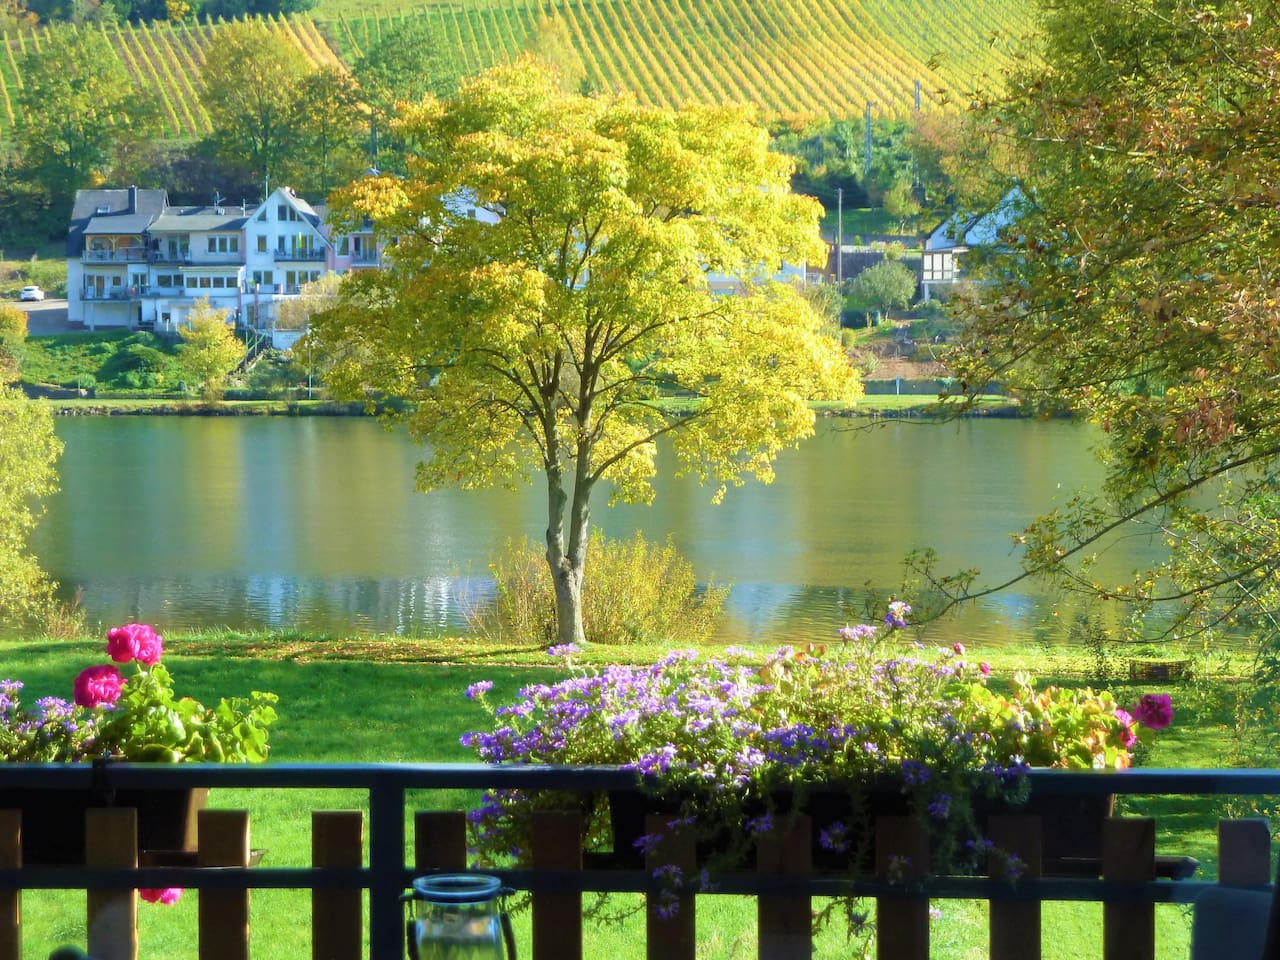 Moselblick aus dem Wohnzimmer  - View from Living Room to Moselle River